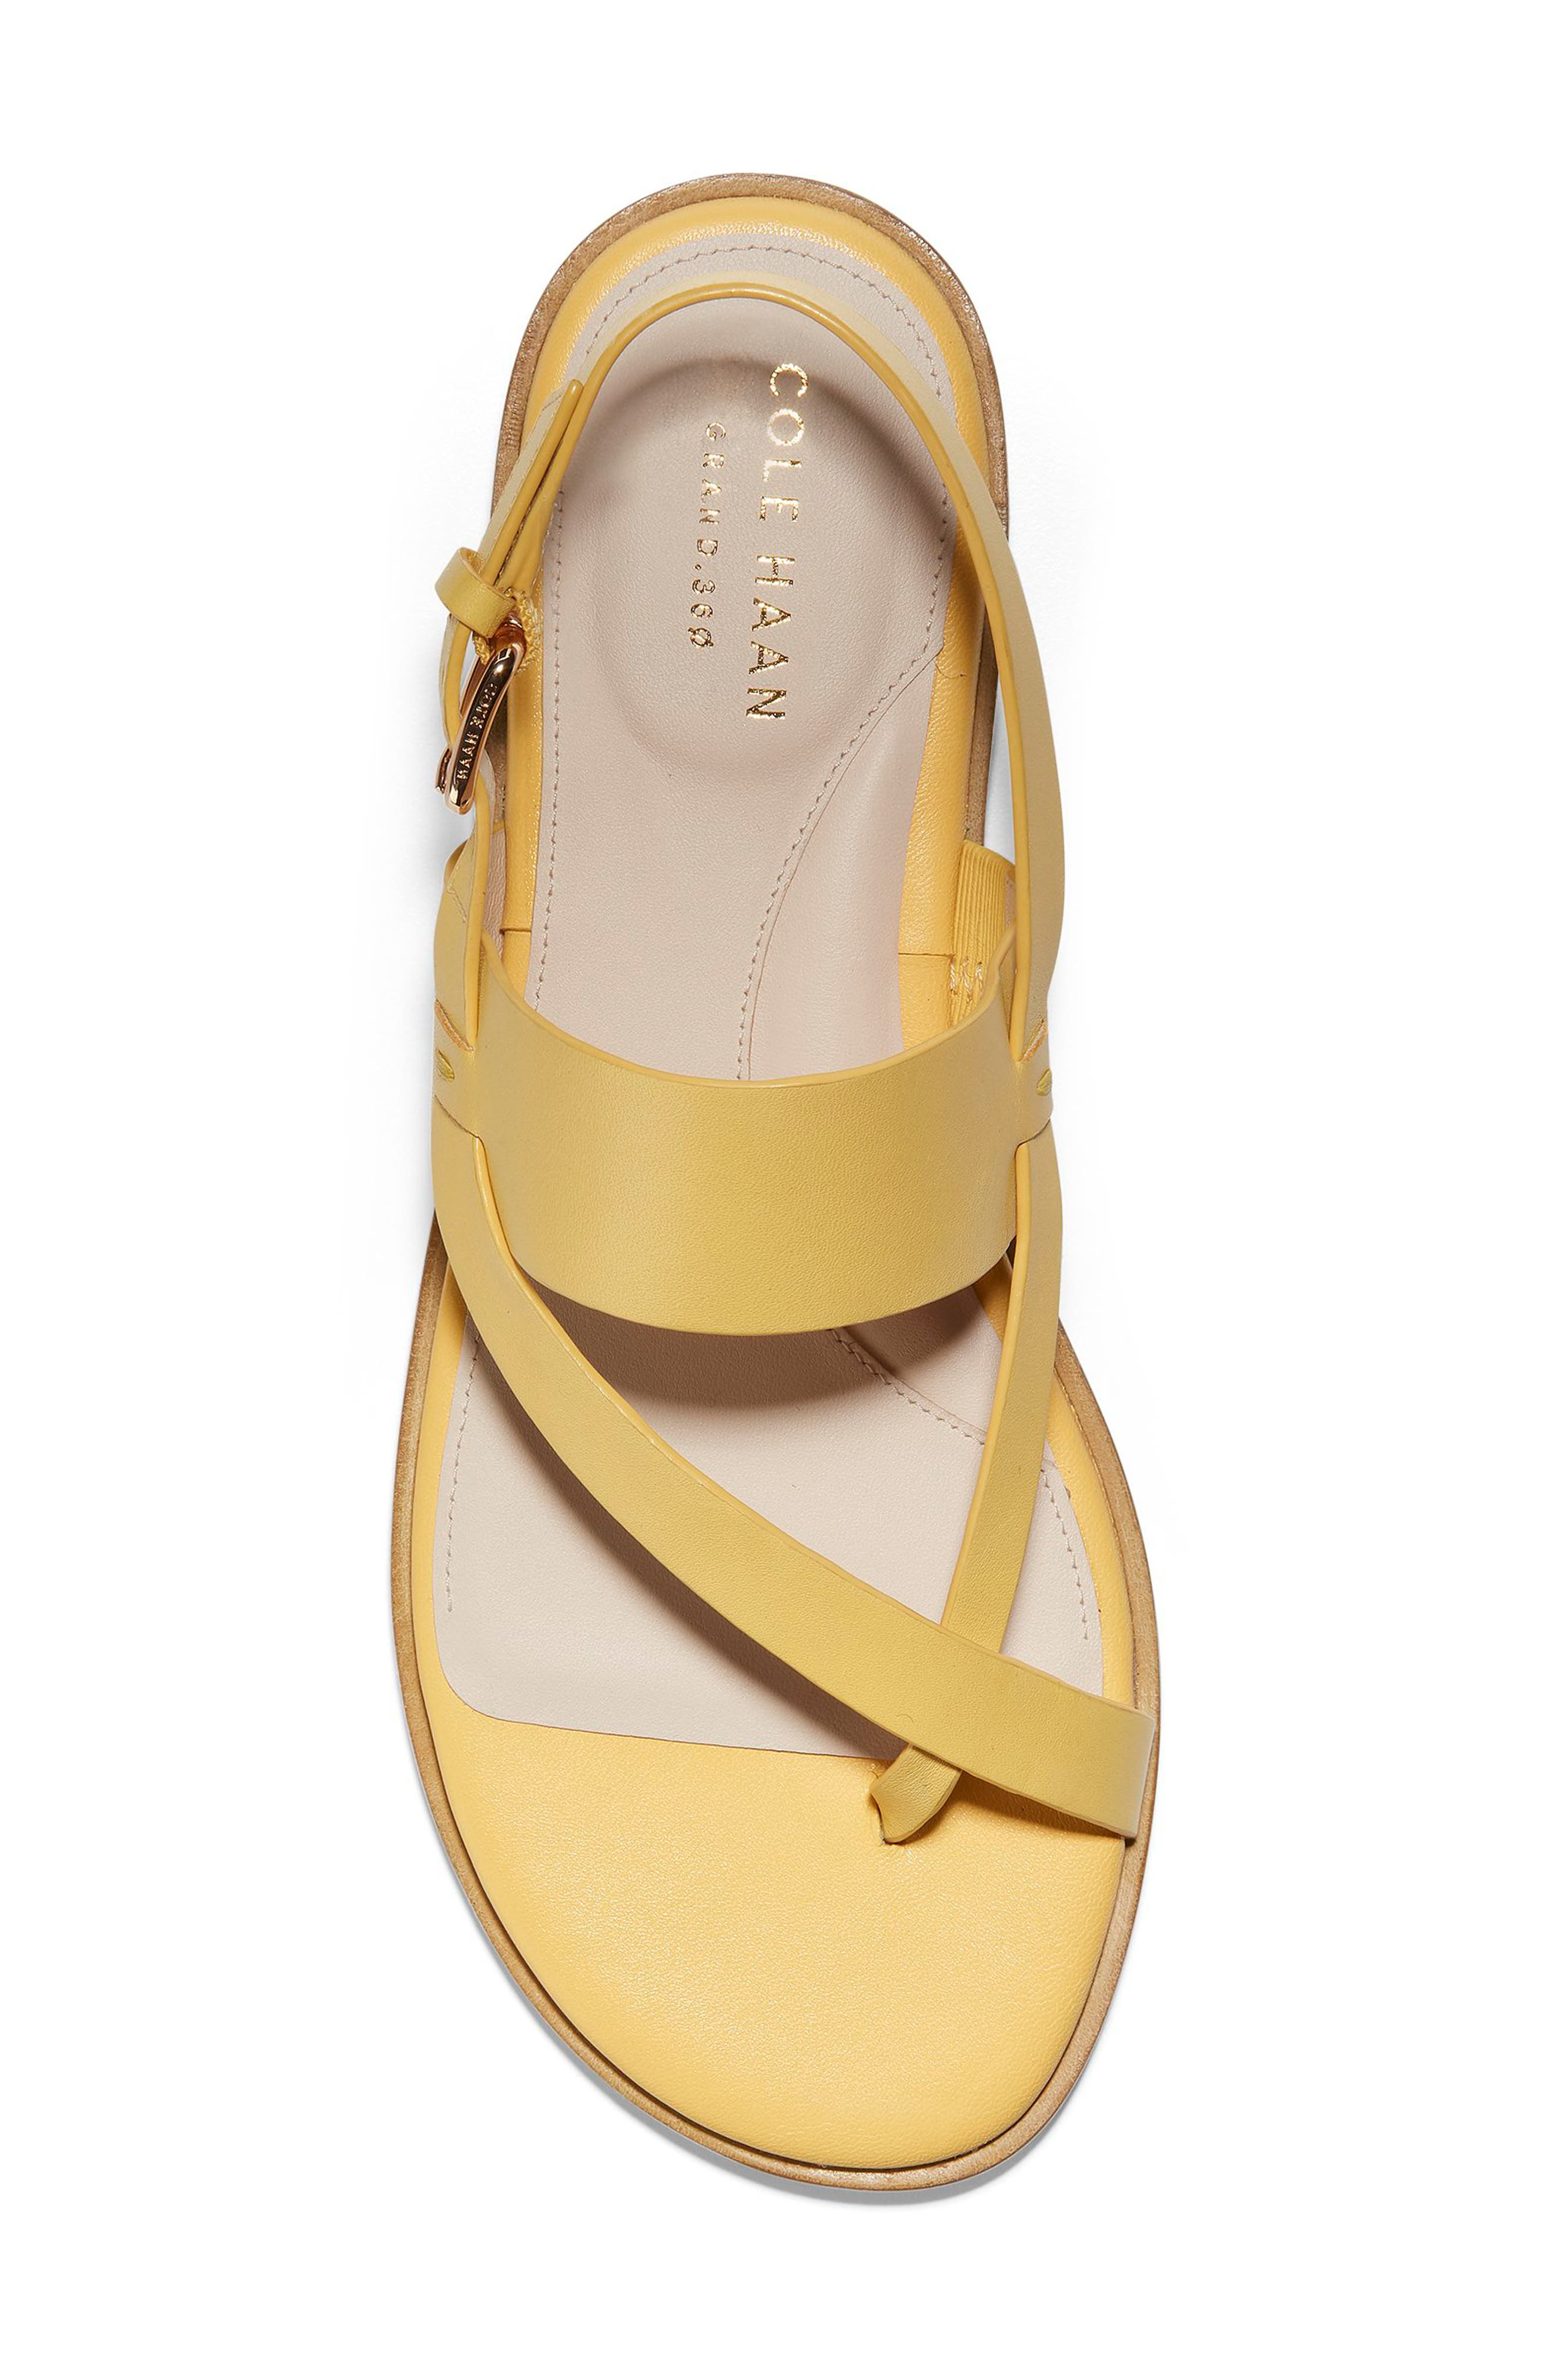 COLE HAAN, Anica Sandal, Alternate thumbnail 5, color, SUNSET GOLD LEATHER